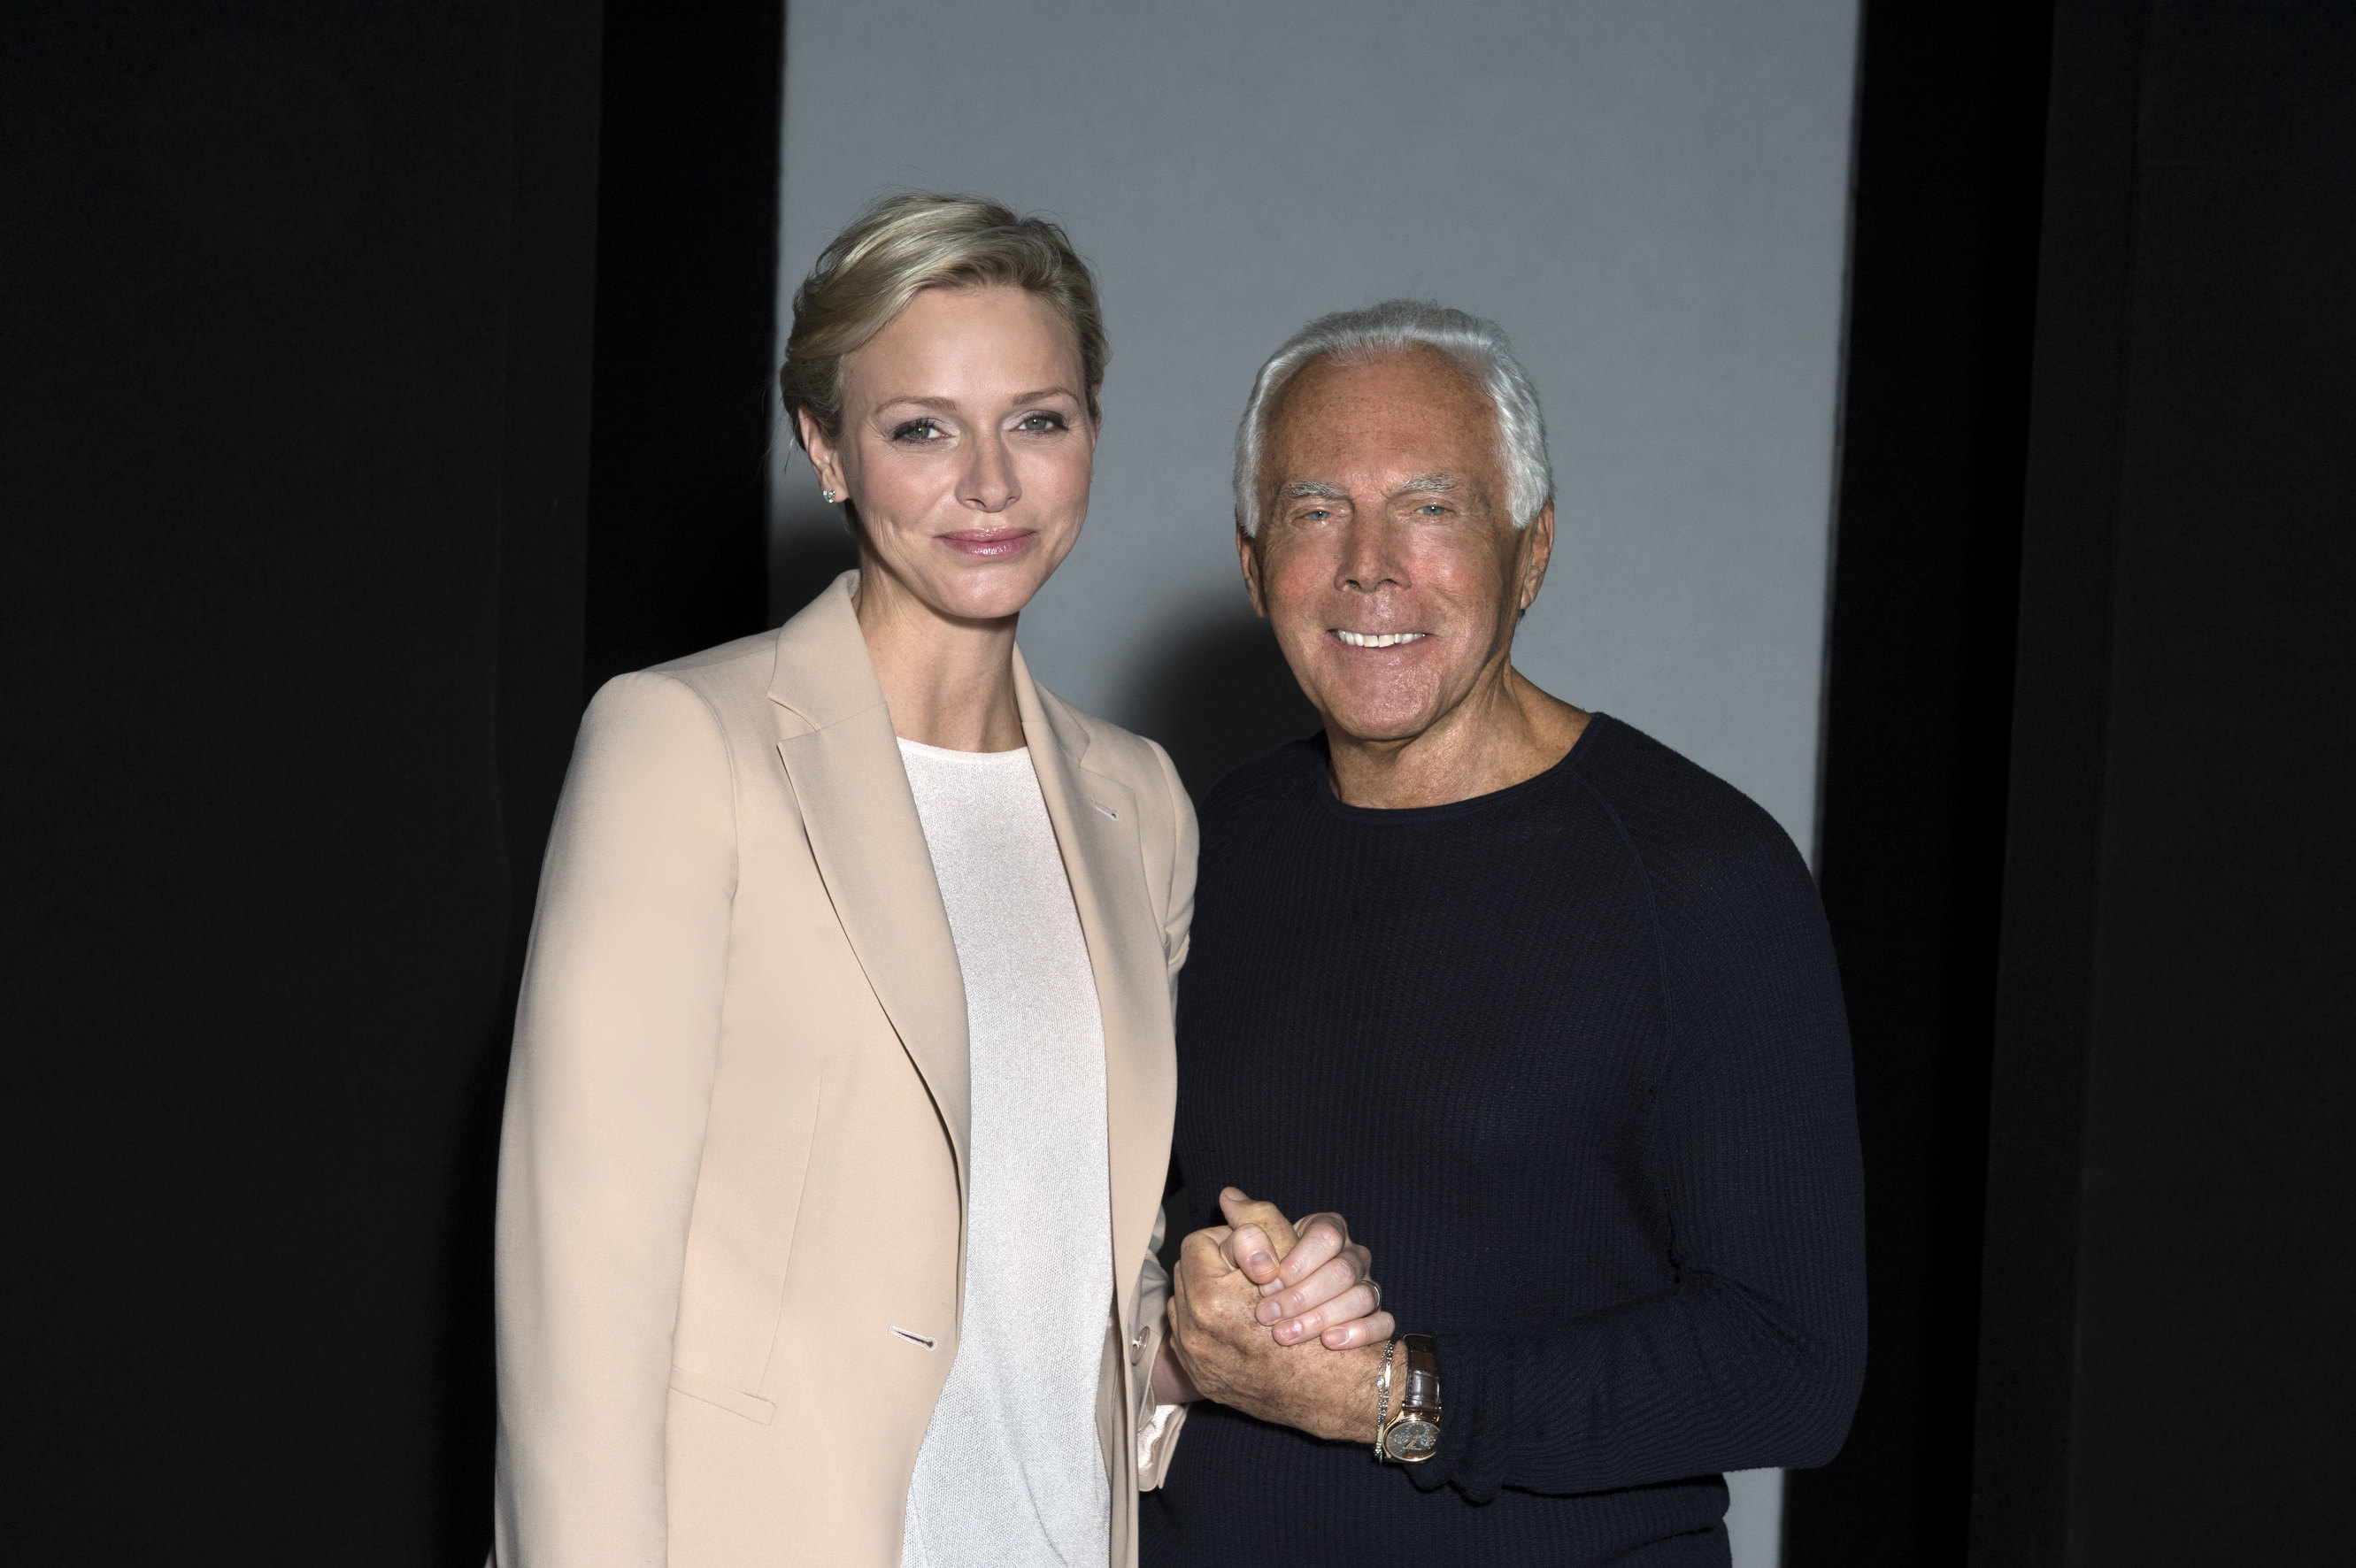 hsh-princess-charlene-of-monaco-and-giorgio-armani